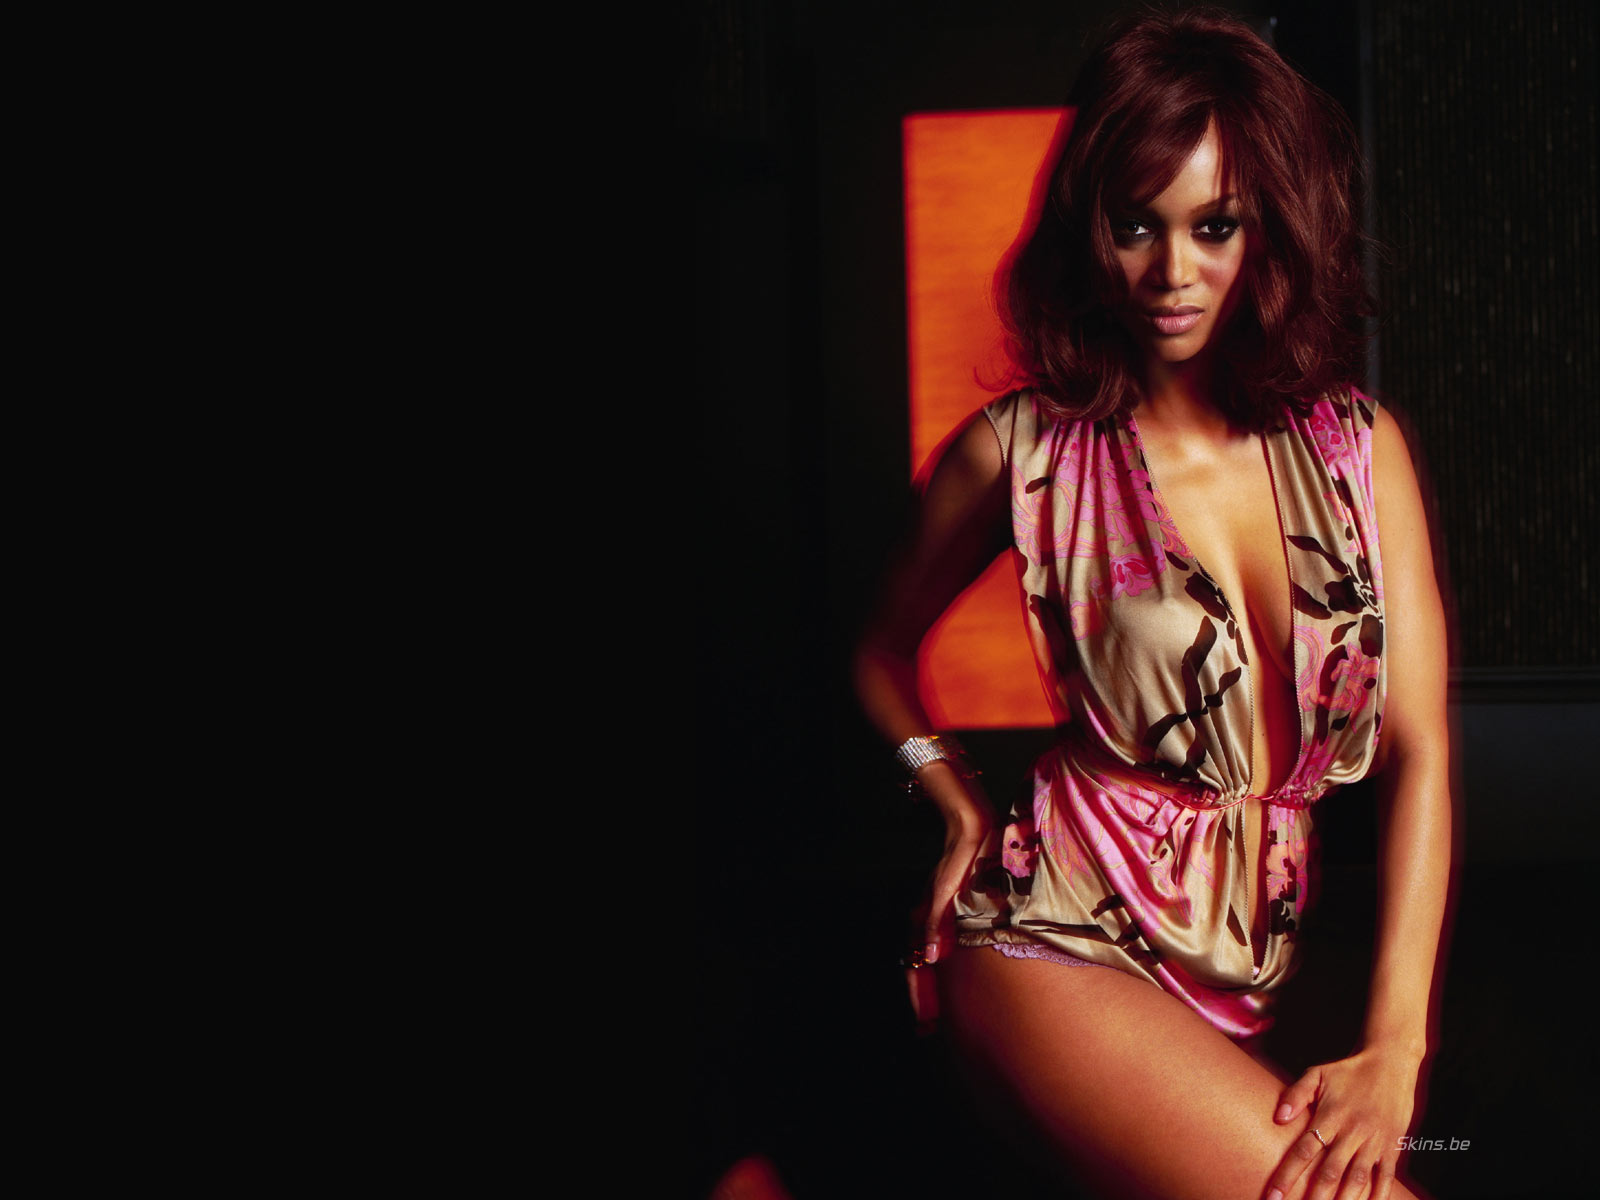 Image Search Tyra Banks Naked